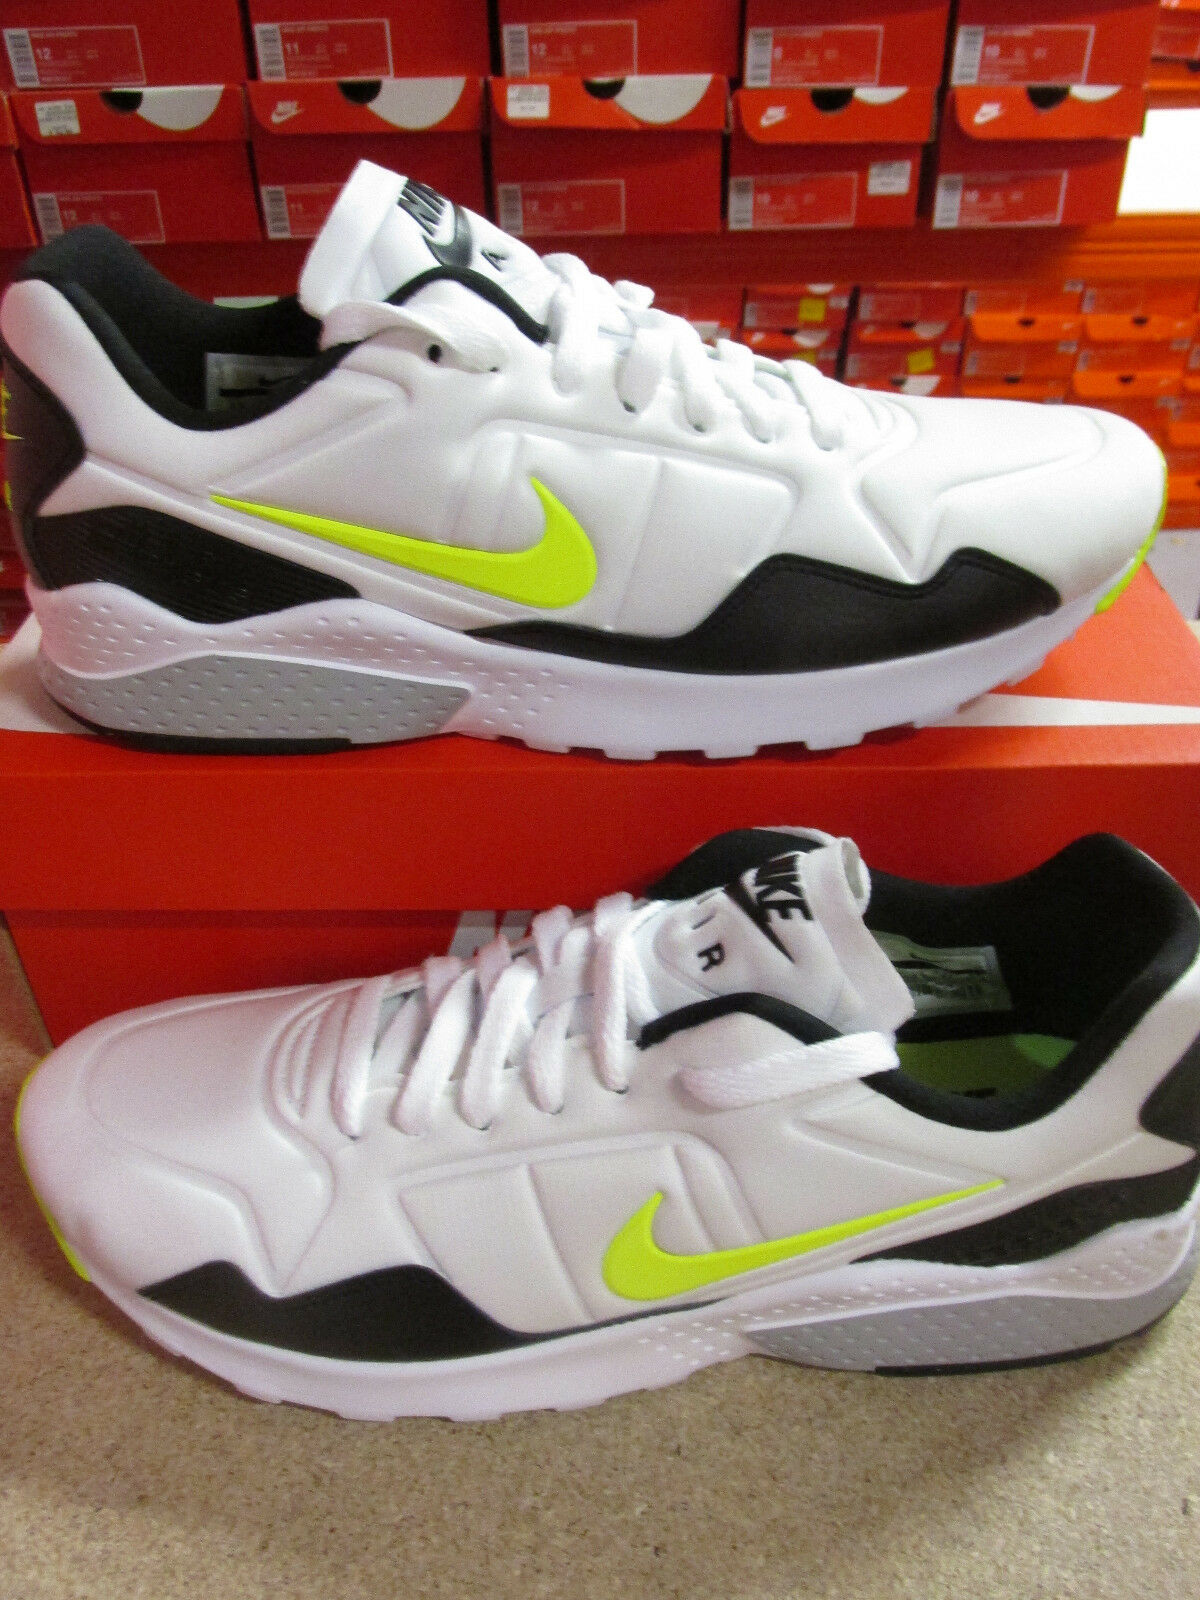 Nike Air Zoom Pegasus 92 homme fonctionnement Trainers 844652 101 Sneakers chaussures